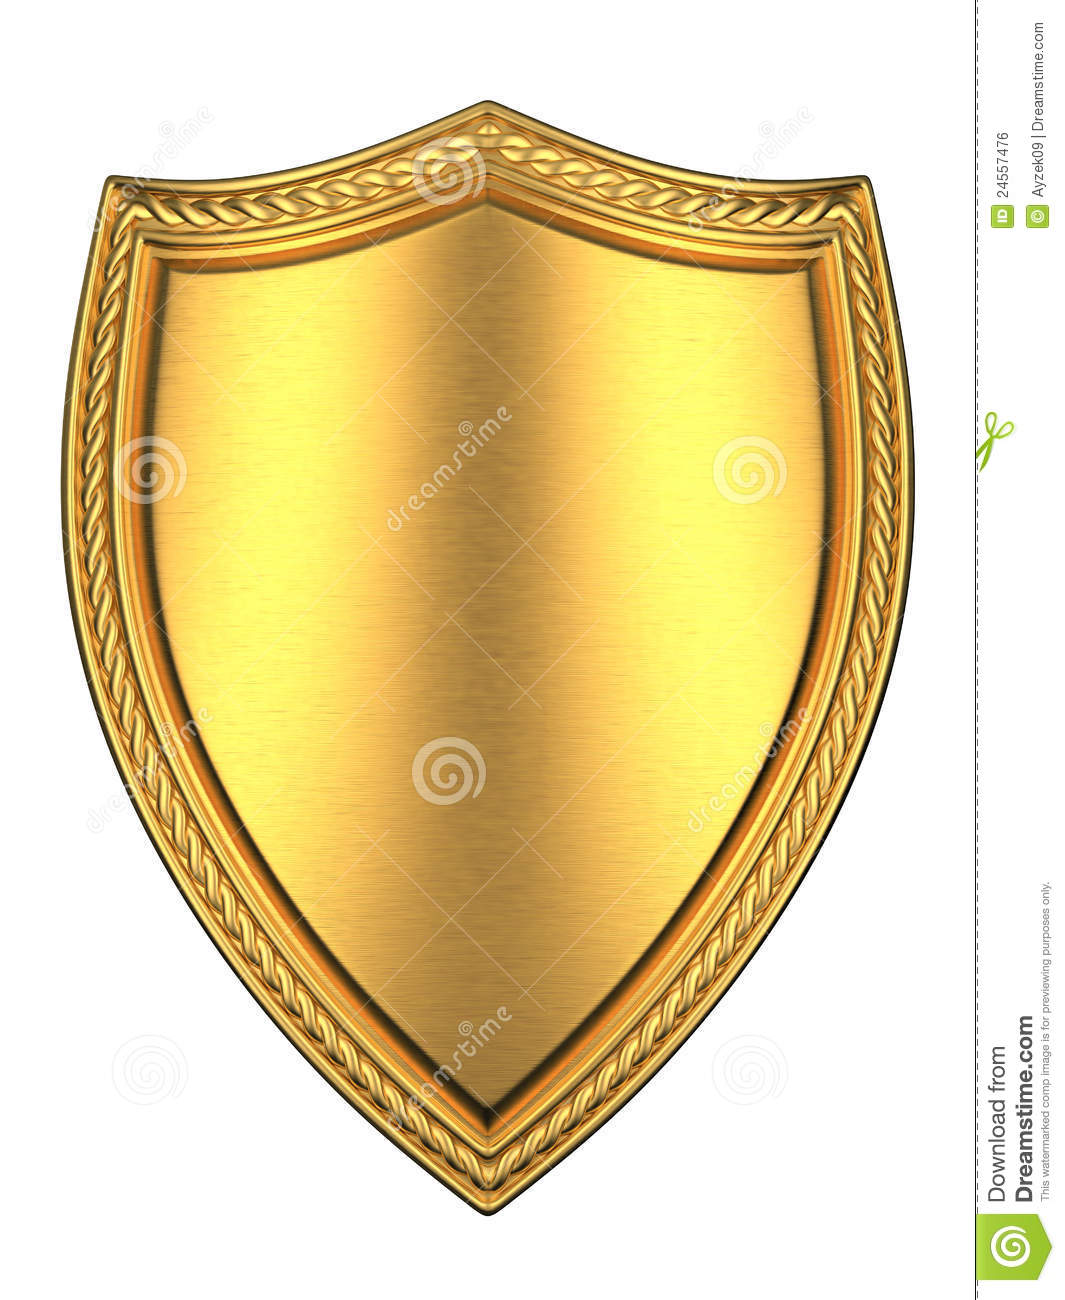 Brushed Gold Shield Royalty Free Stock Image - Image: 24557476